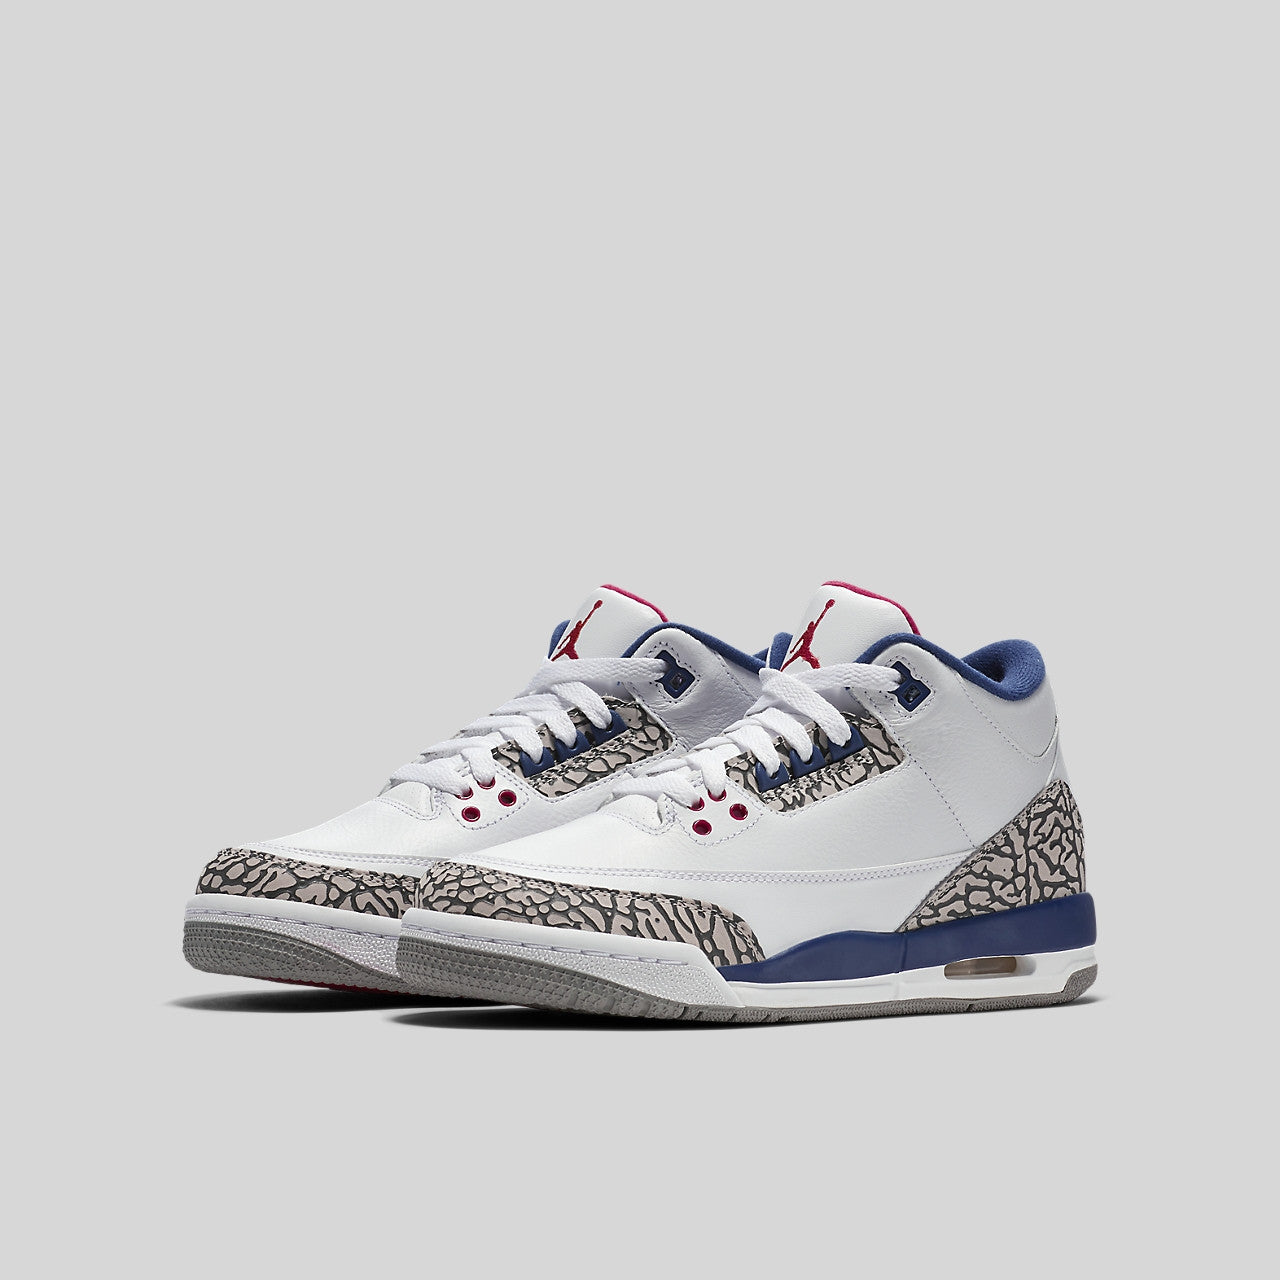 timeless design fd8eb ff01d Nike Air Jordan 3 Retro OG BG (GS) True Blue